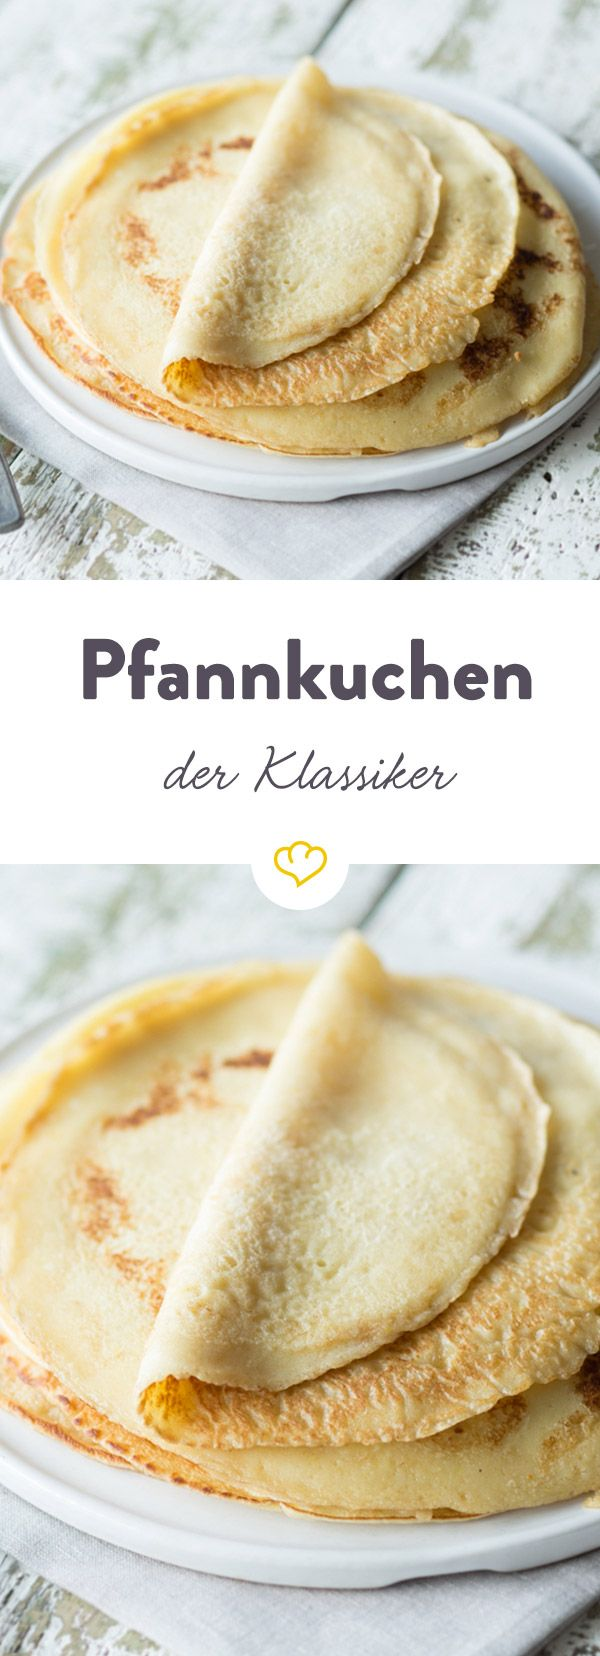 25 best ideas about pfannkuchen grundrezept on pinterest s e pfannkuchen grundrezept. Black Bedroom Furniture Sets. Home Design Ideas